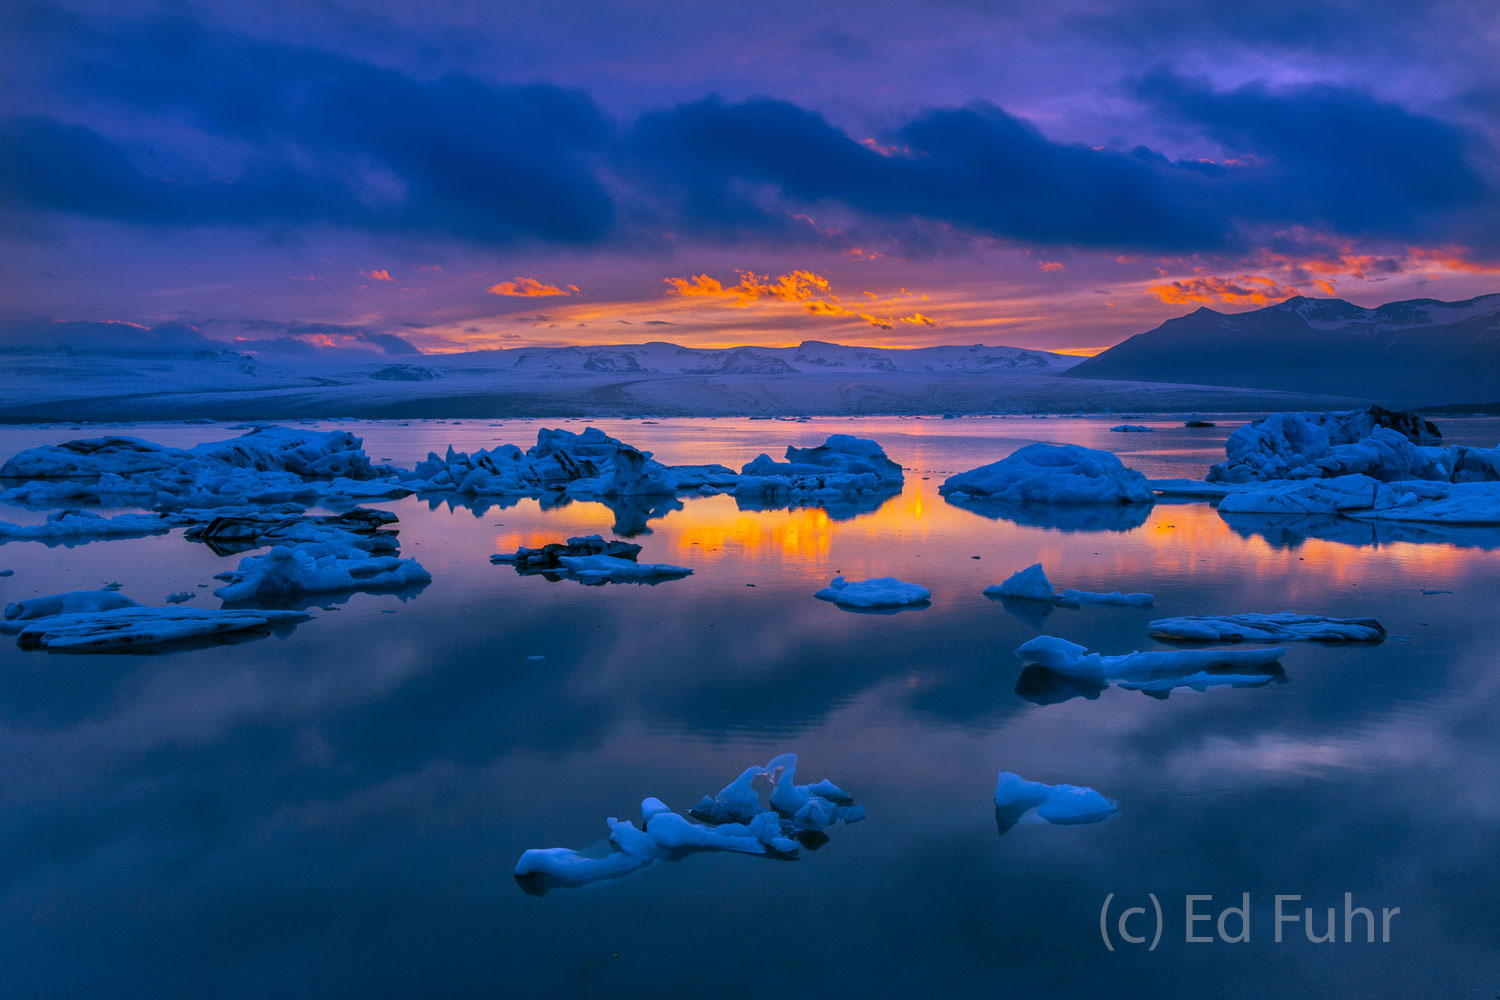 Beyond Jokulsarlon lagoon rises the glacier-covered mountains from which these icebergs have come.   It is well past midnight...